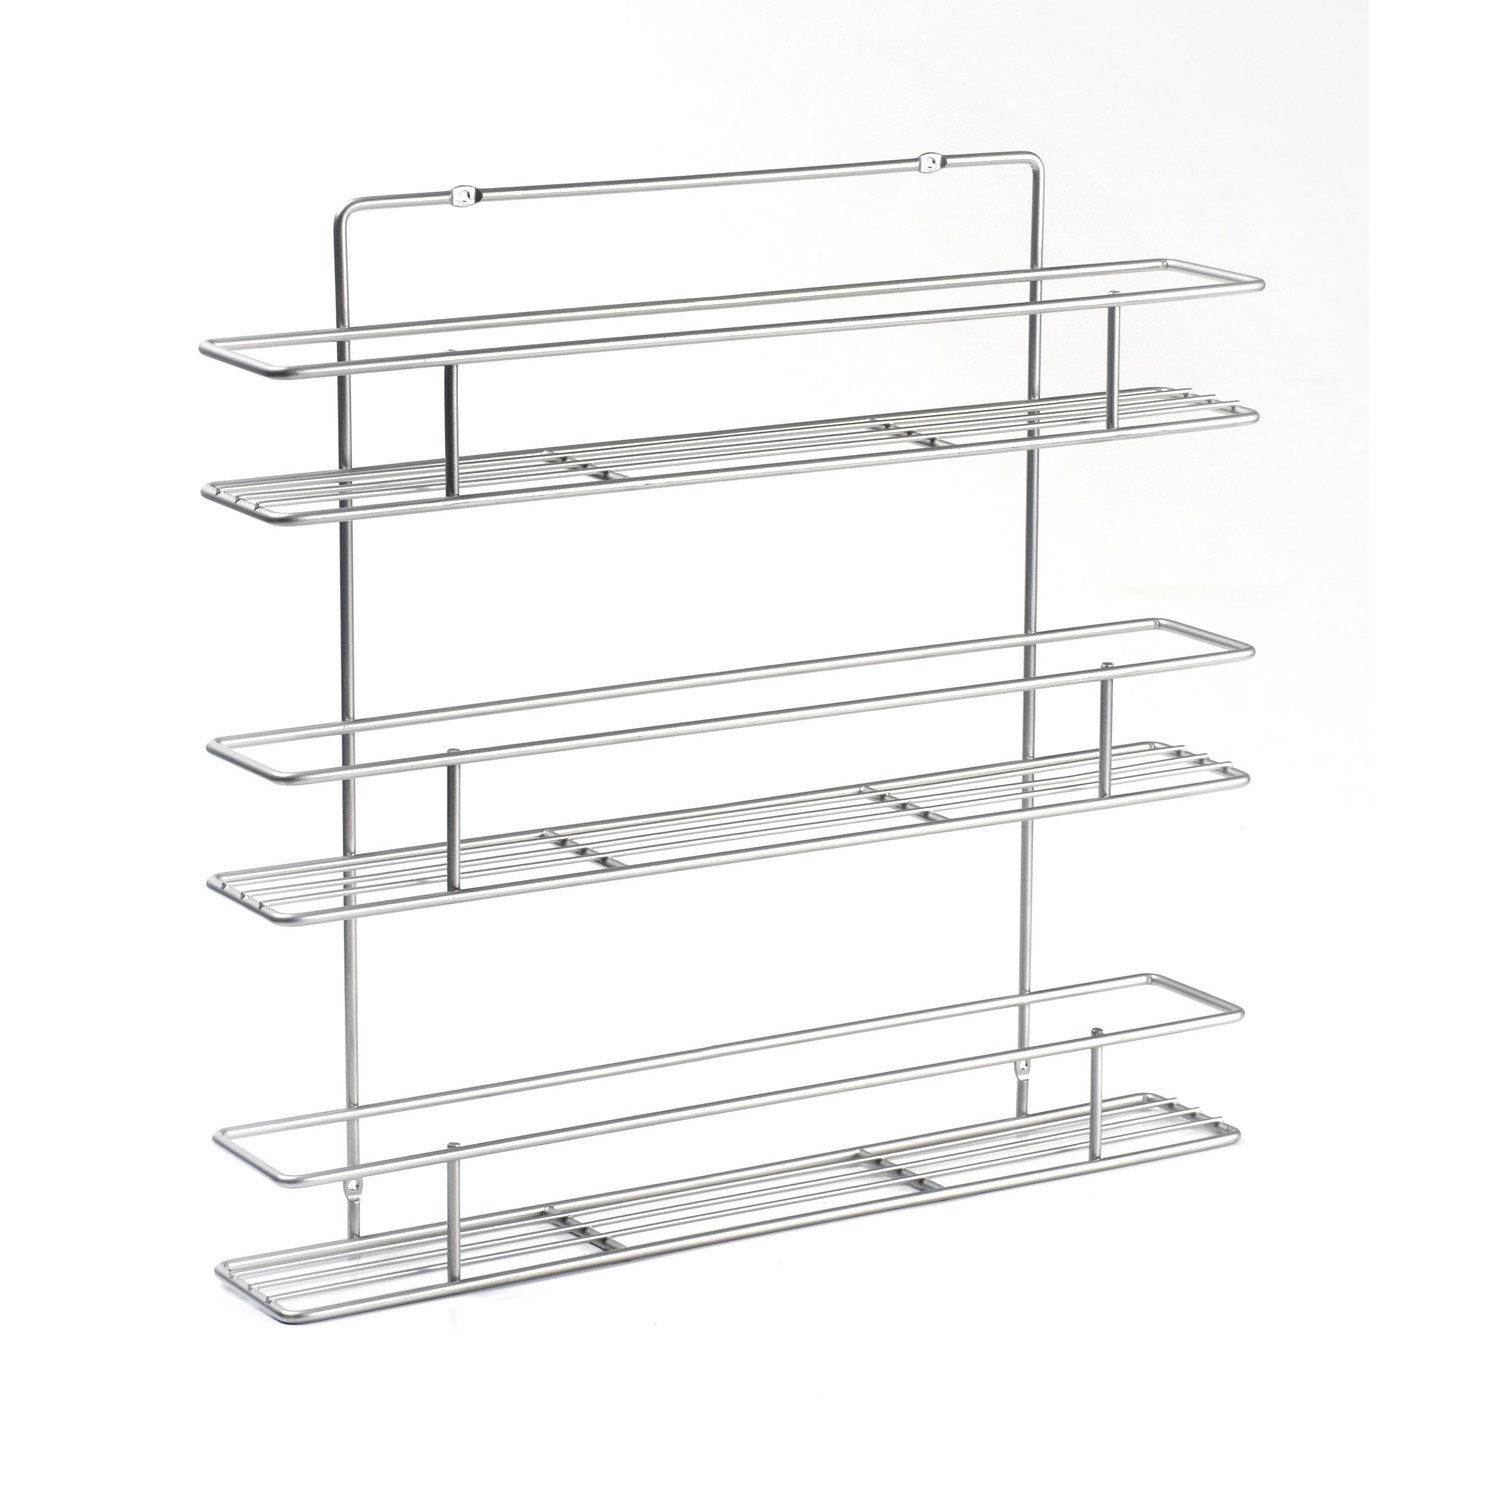 Etag re m tal epoxy leroy merlin for Etagere metal pour cuisine